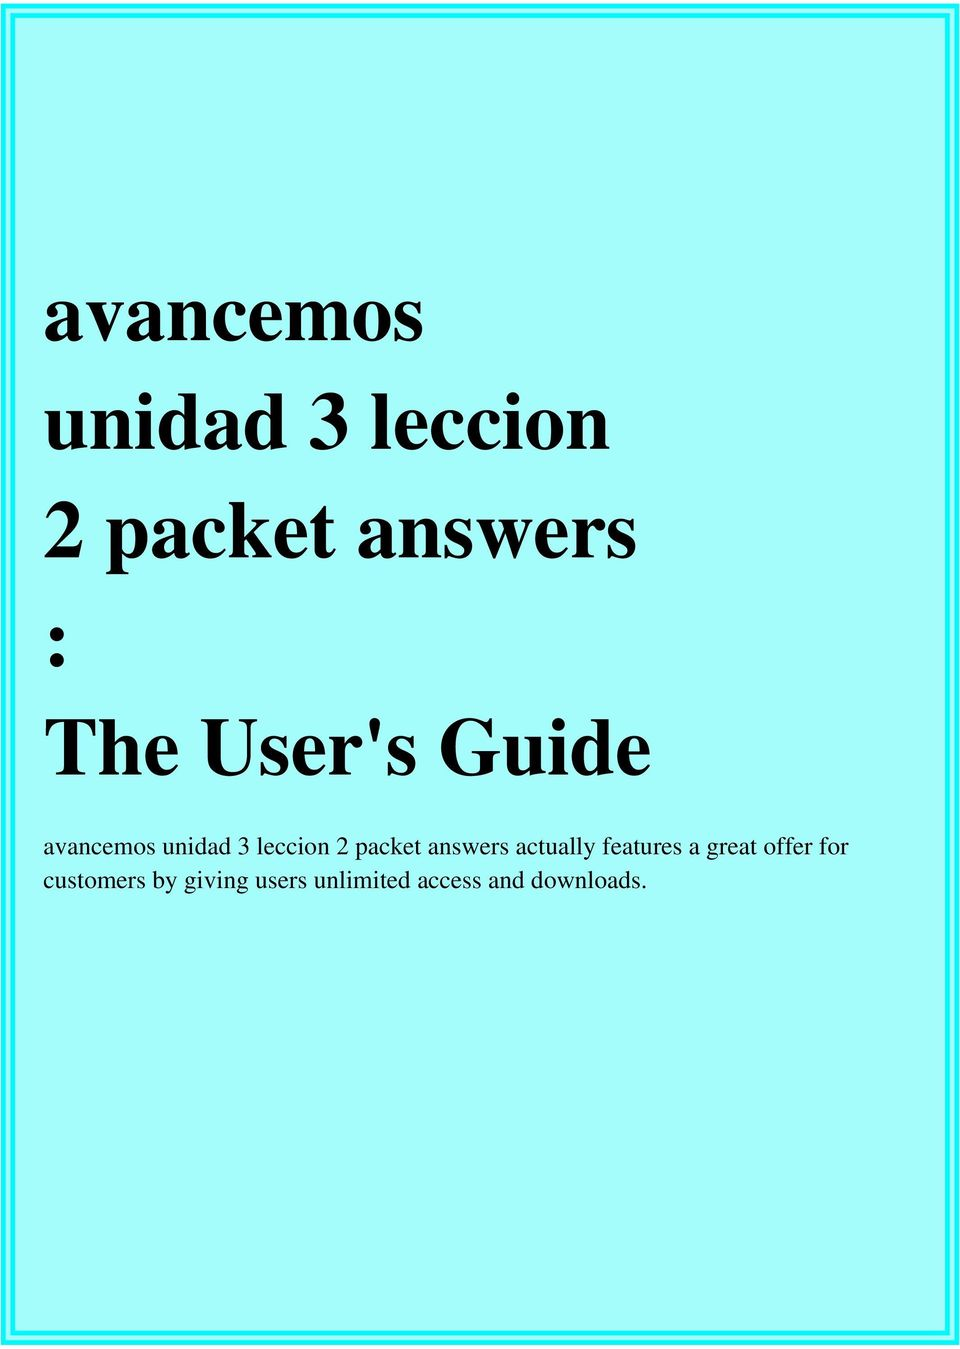 Workbooks avancemos 2 workbook answers online : avancemos unidad 3 leccion 2 packet answers : The User's Guide - PDF